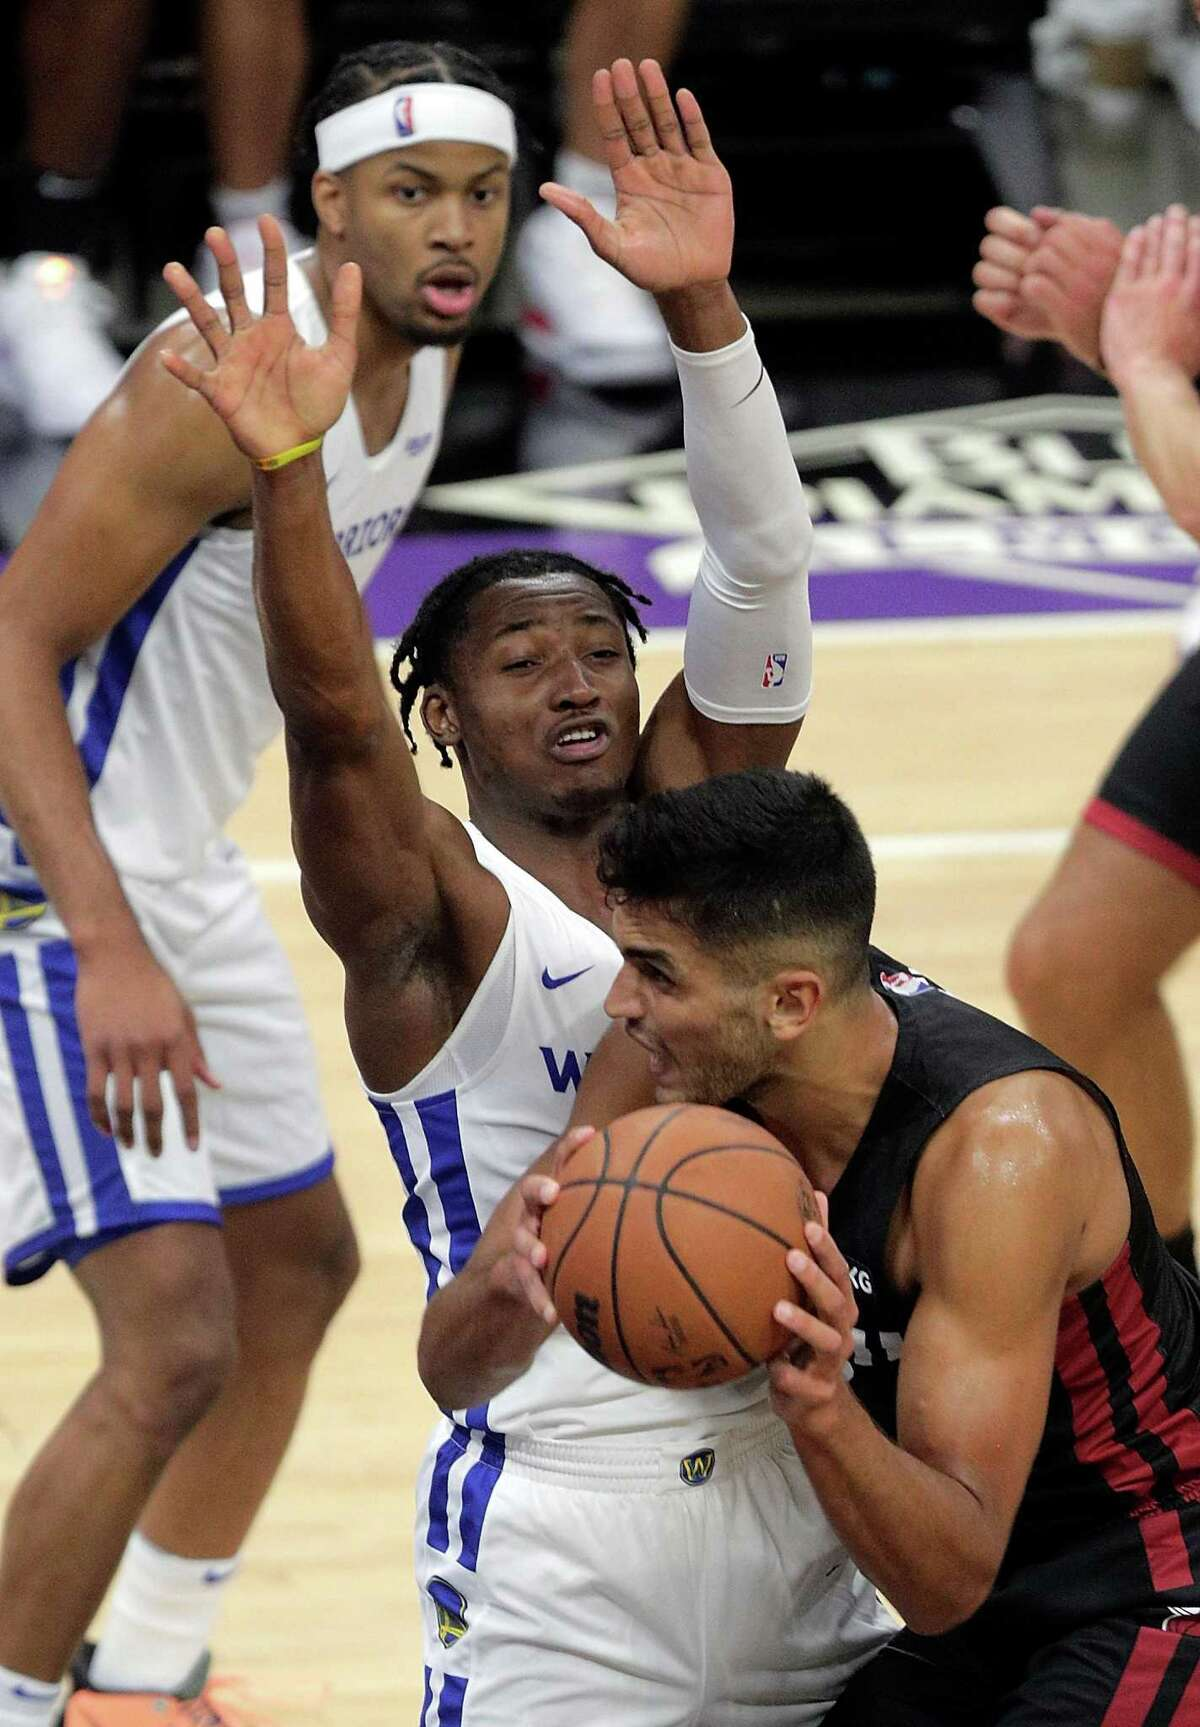 Jonathan Kuminga (00) defends against Omer Yurtseven (77) in the first half as the Golden State Warriors summer league played the Miami Heat Summer league in the 2021 California Classic at Golden 1 Center in Sacramento, Calif., on Wednesday, August 4, 2021.